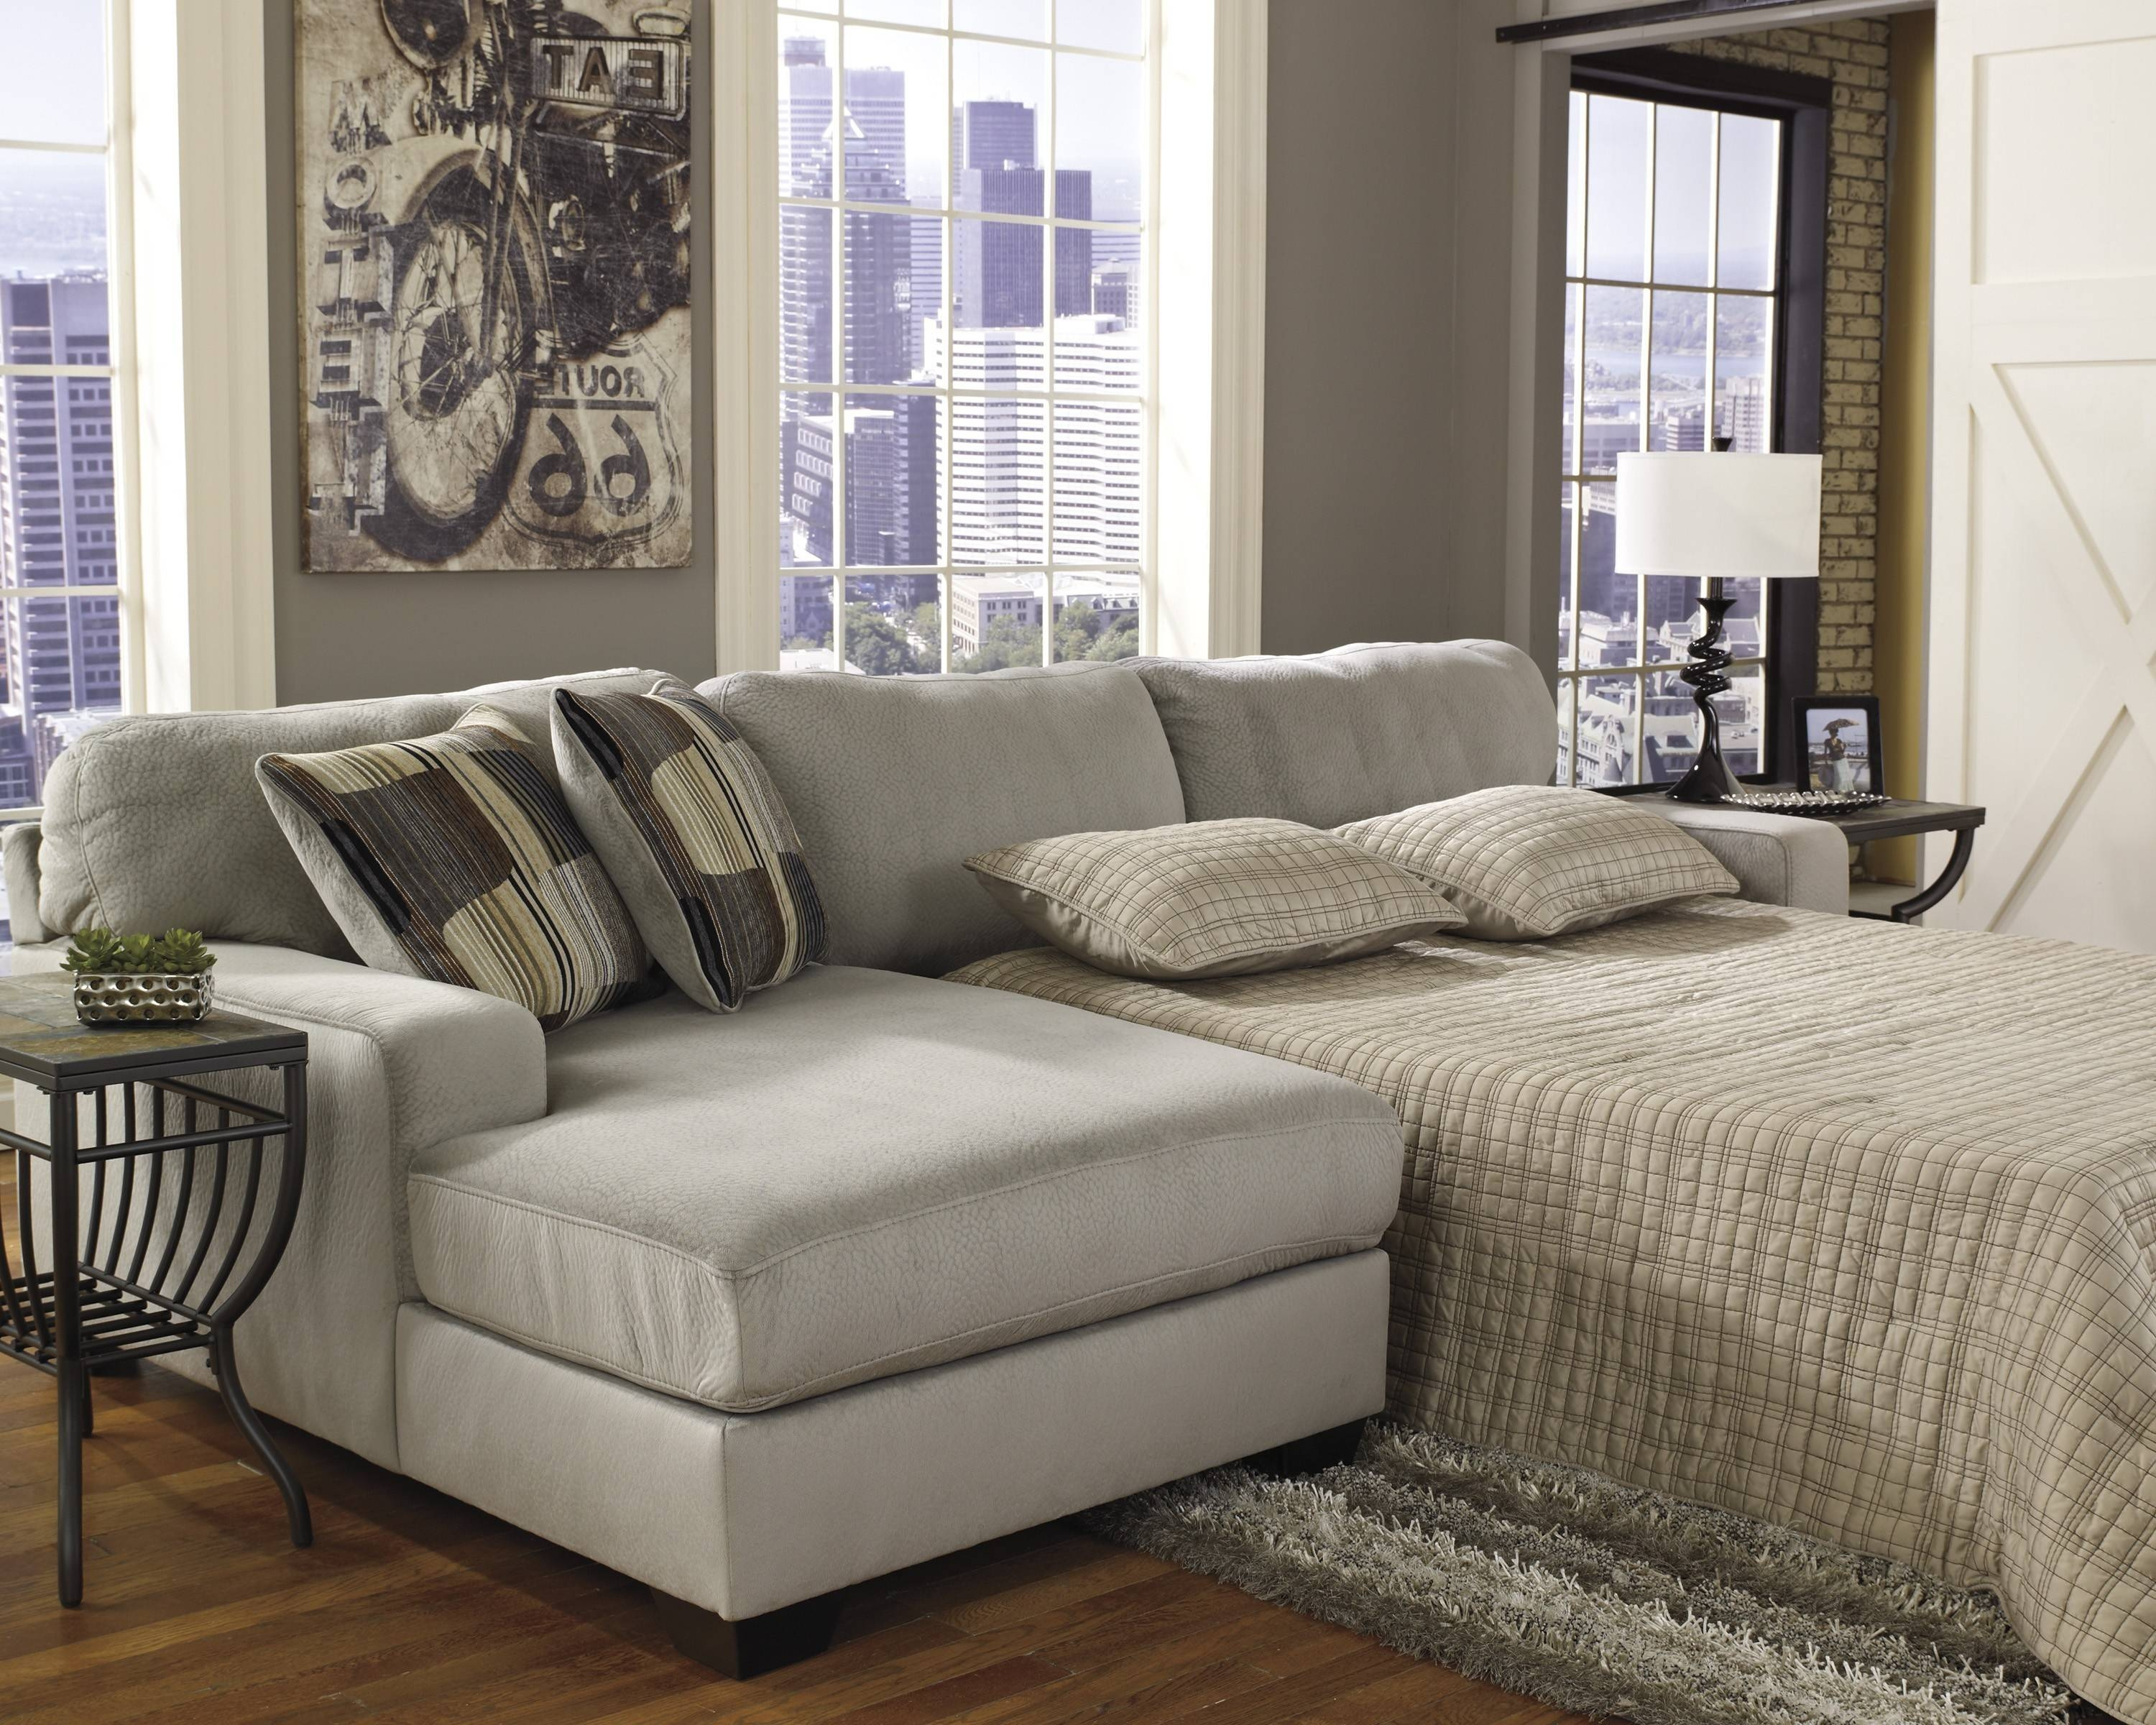 Furniture: Wide Sectional Couches | Oversized Sectional Sofas within Giant Sofas (Image 10 of 15)